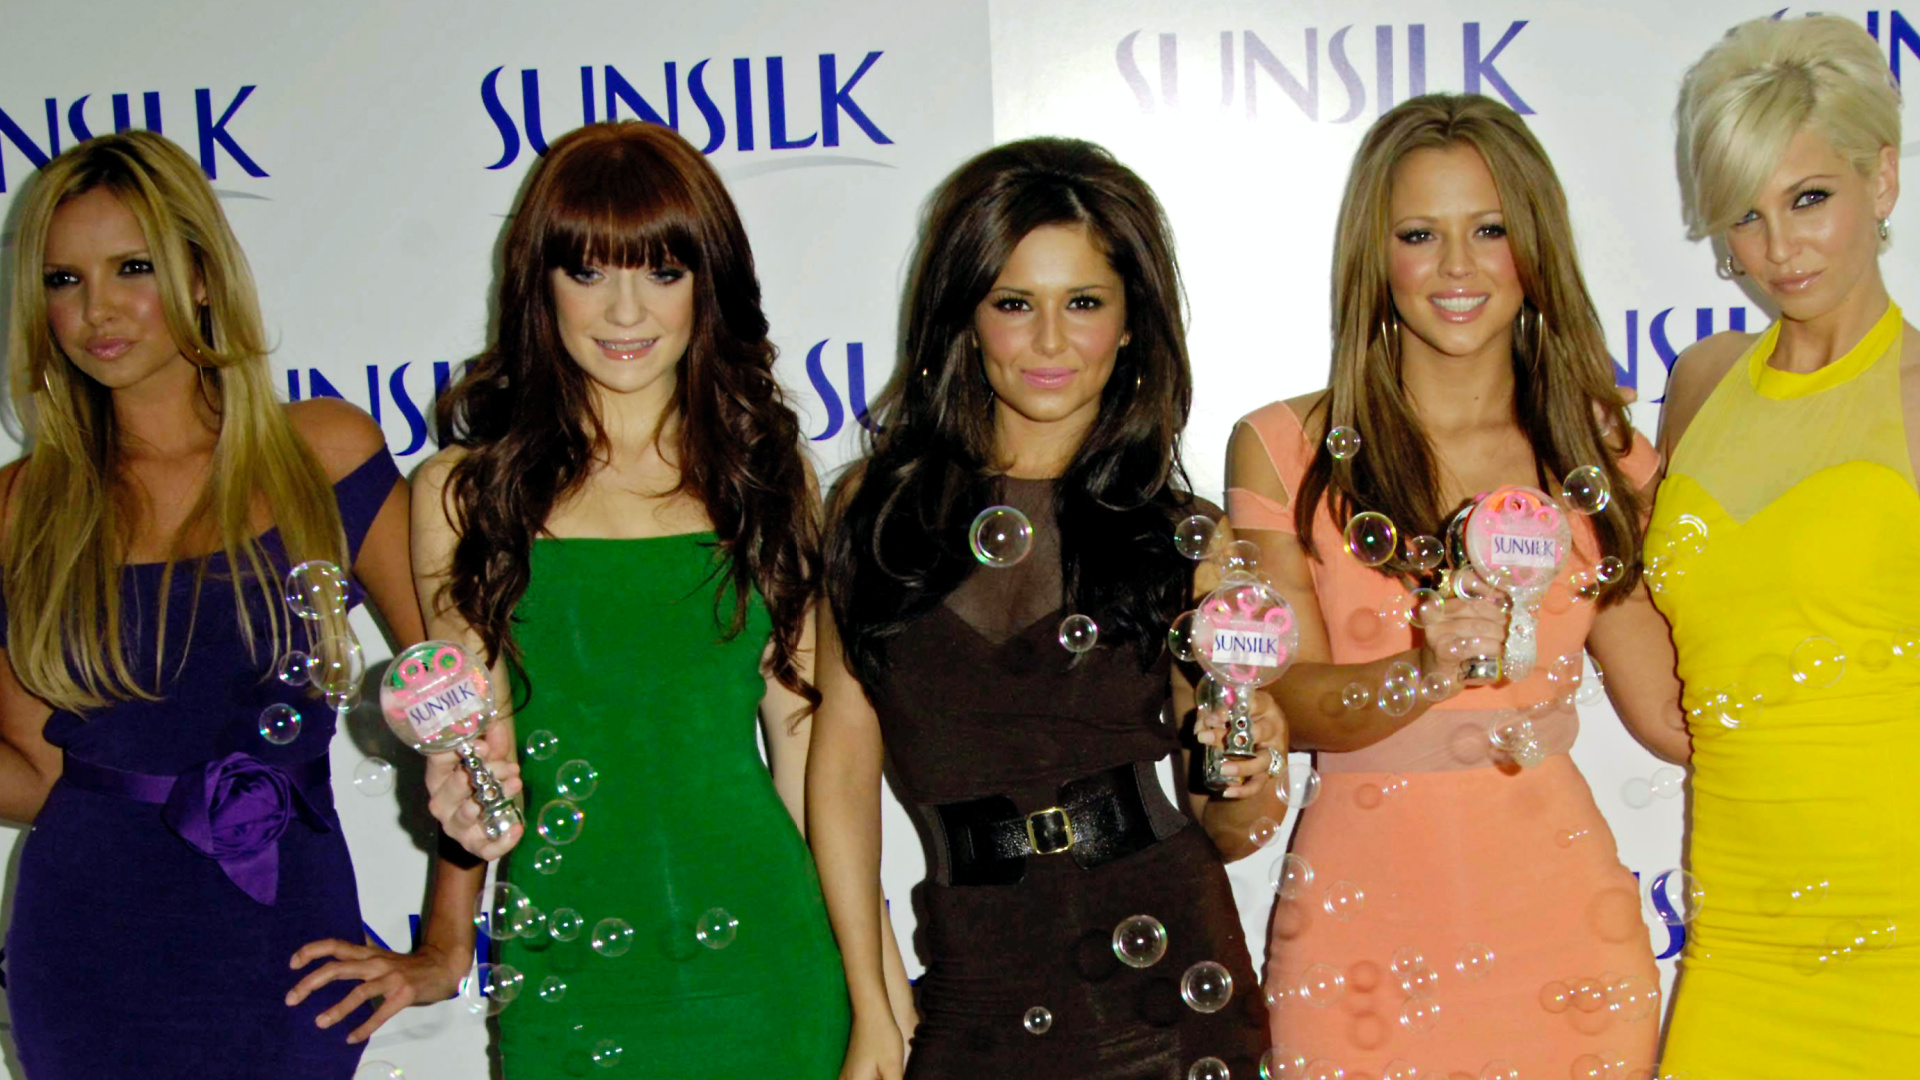 Supremes, Girls Aloud, Blackpink: the best girl groups of the past century